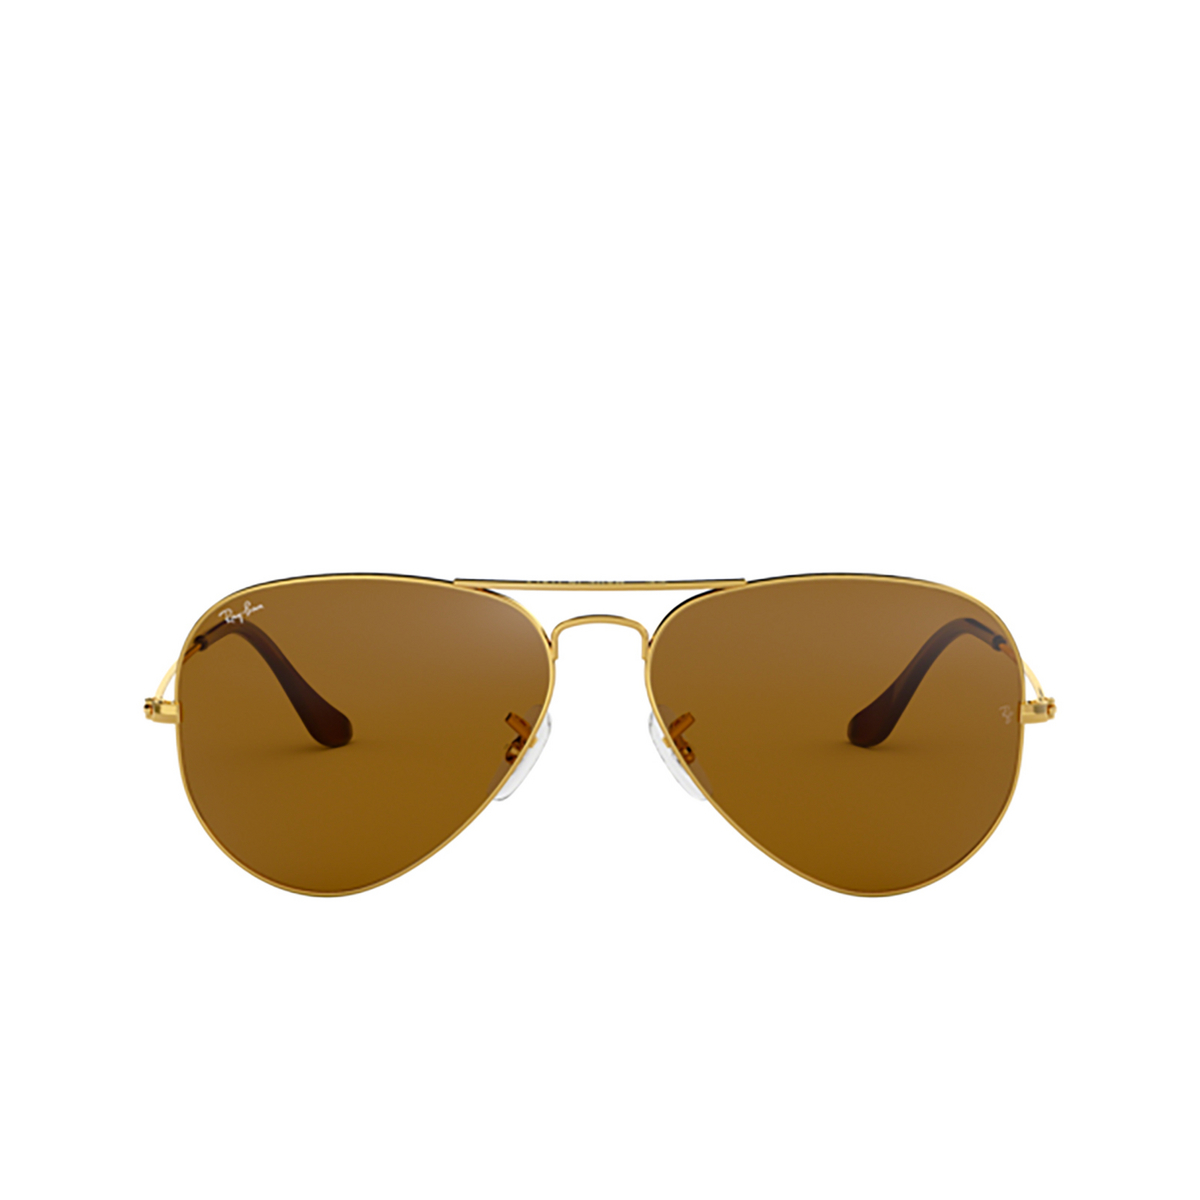 Ray-Ban® Aviator Sunglasses: Aviator Large Metal RB3025 color Arista 001/33 - front view.